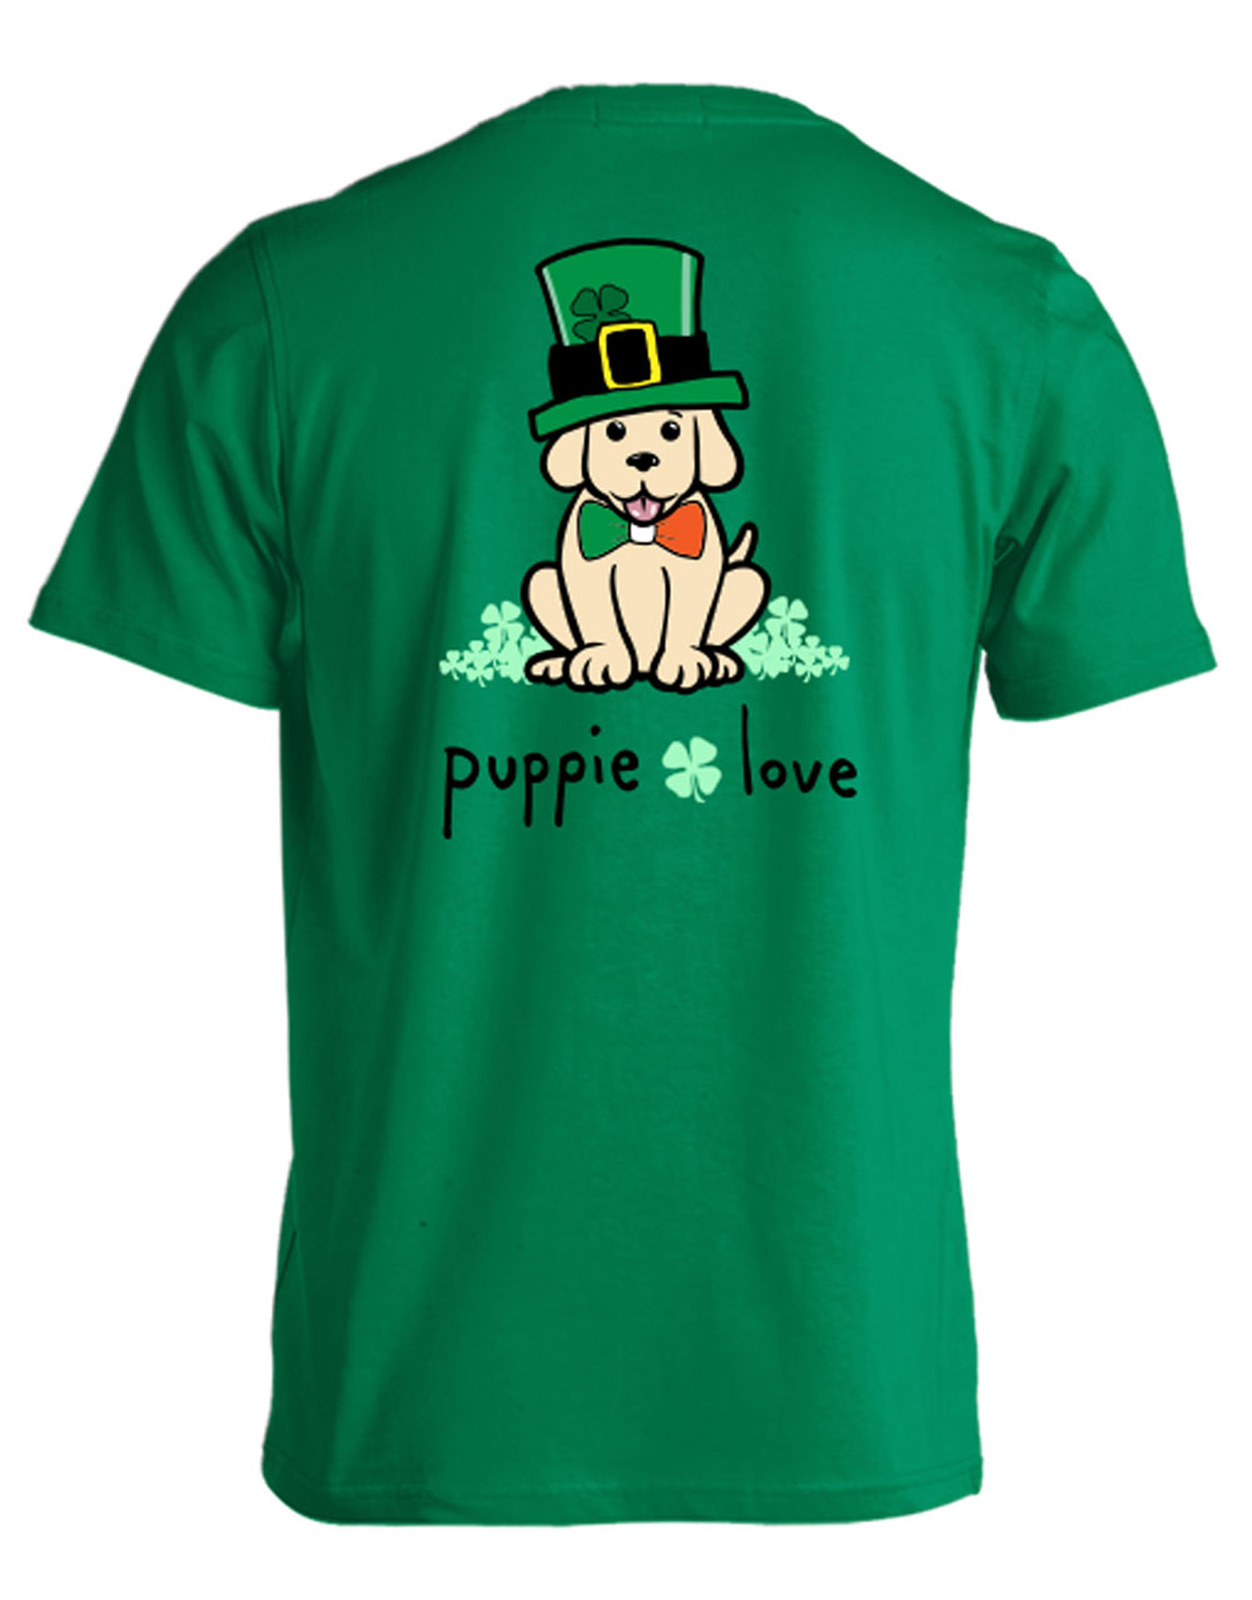 Puppie Love Rescue Dog Men Women Short Sleeve Graphic T-Shirt, Shamrock Hat Pup